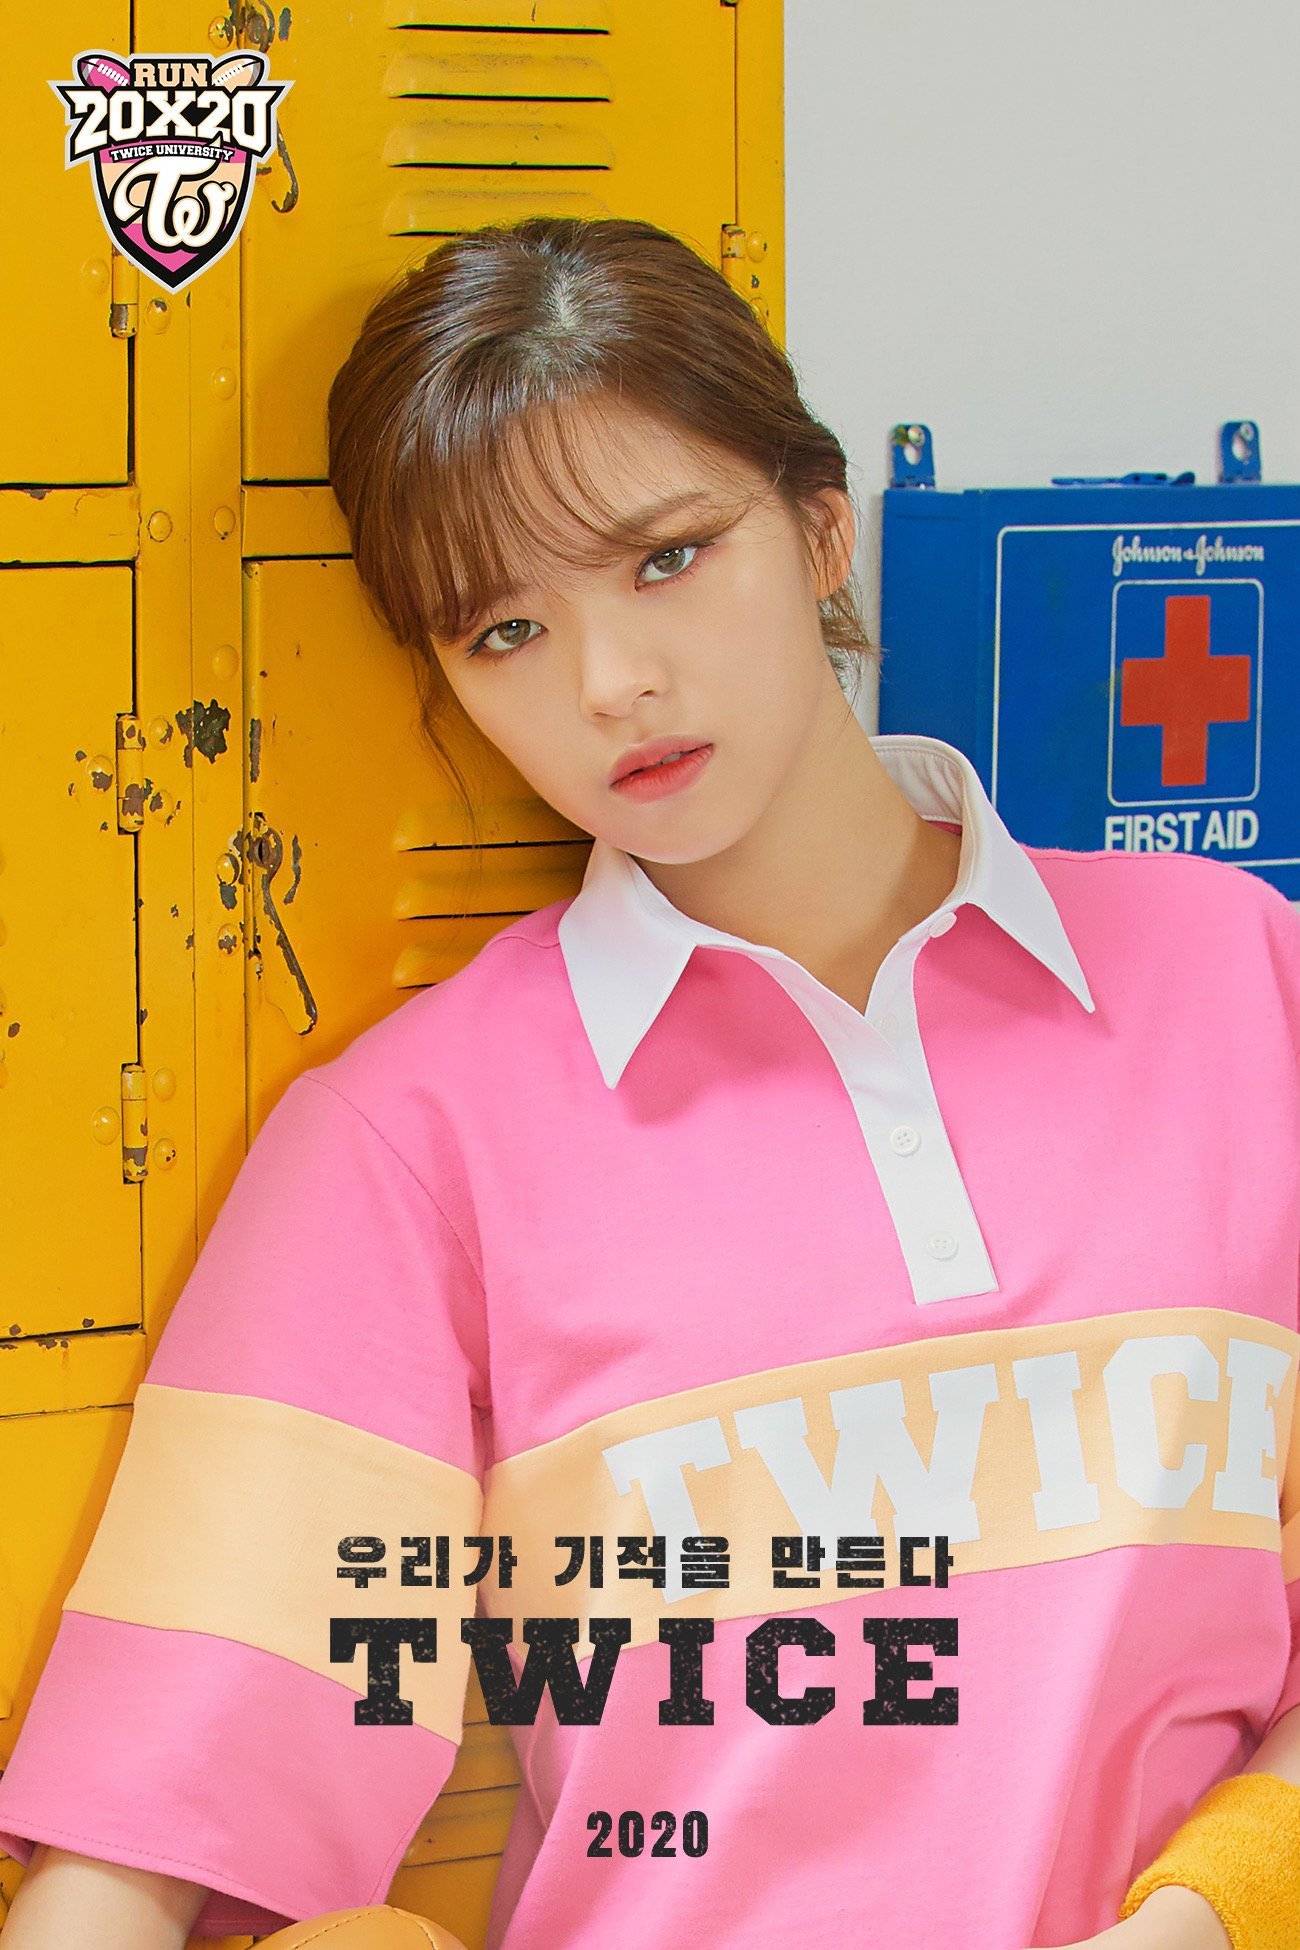 TWICE Season's Greetings 2020 Twice University Rugby Team Jeongyeon